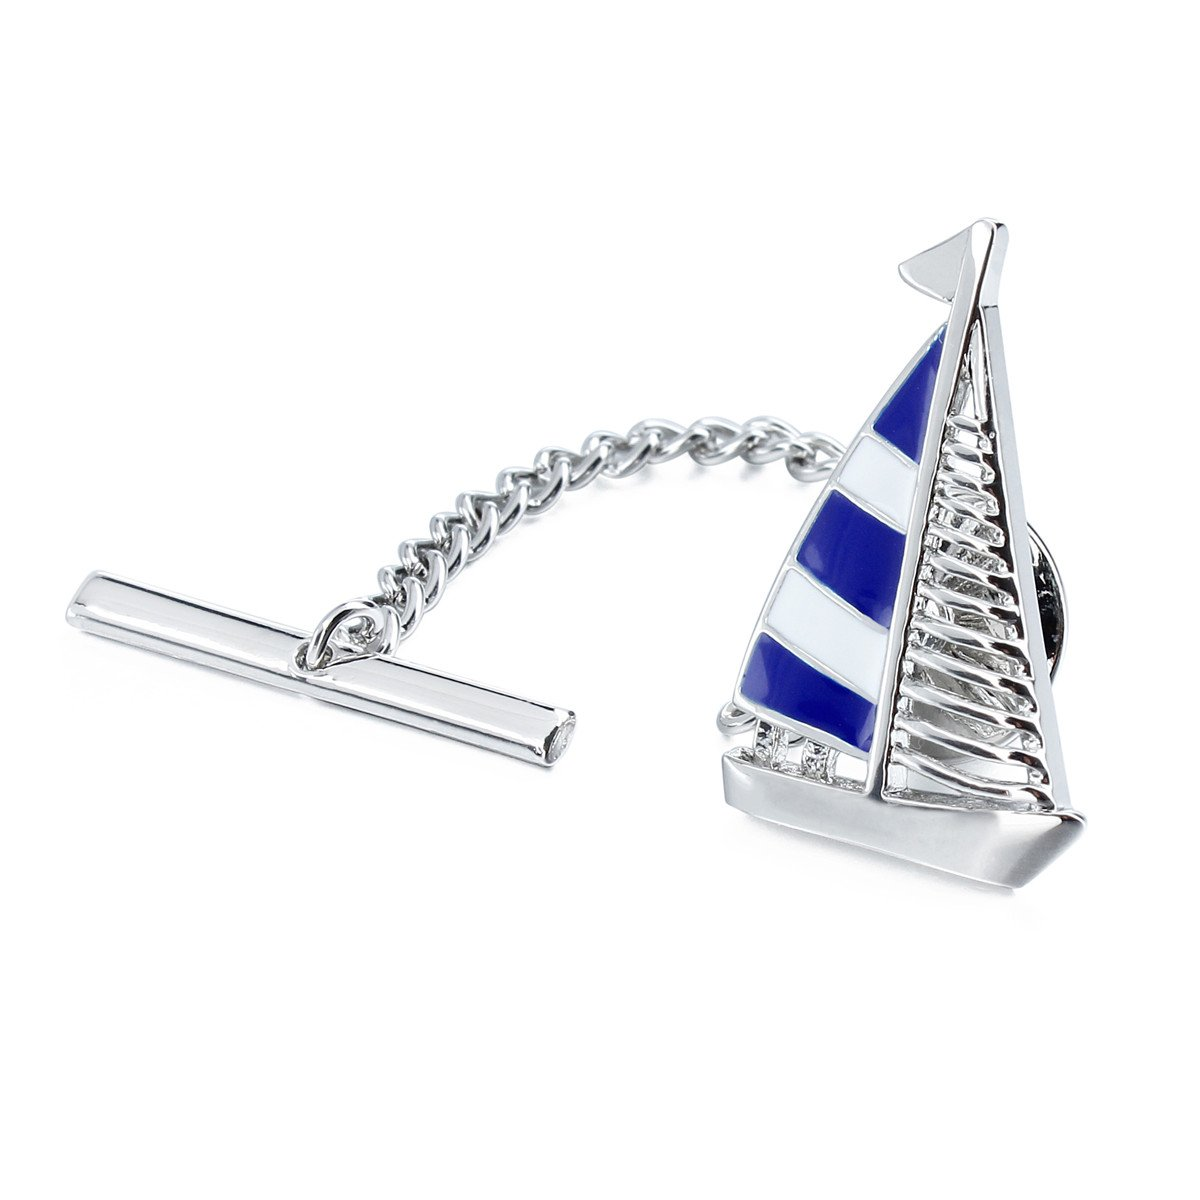 HAWSON Blue Tie Clip Tie Tack with Clucth Back Wedding Party Accessories - Sailing Boat Shape